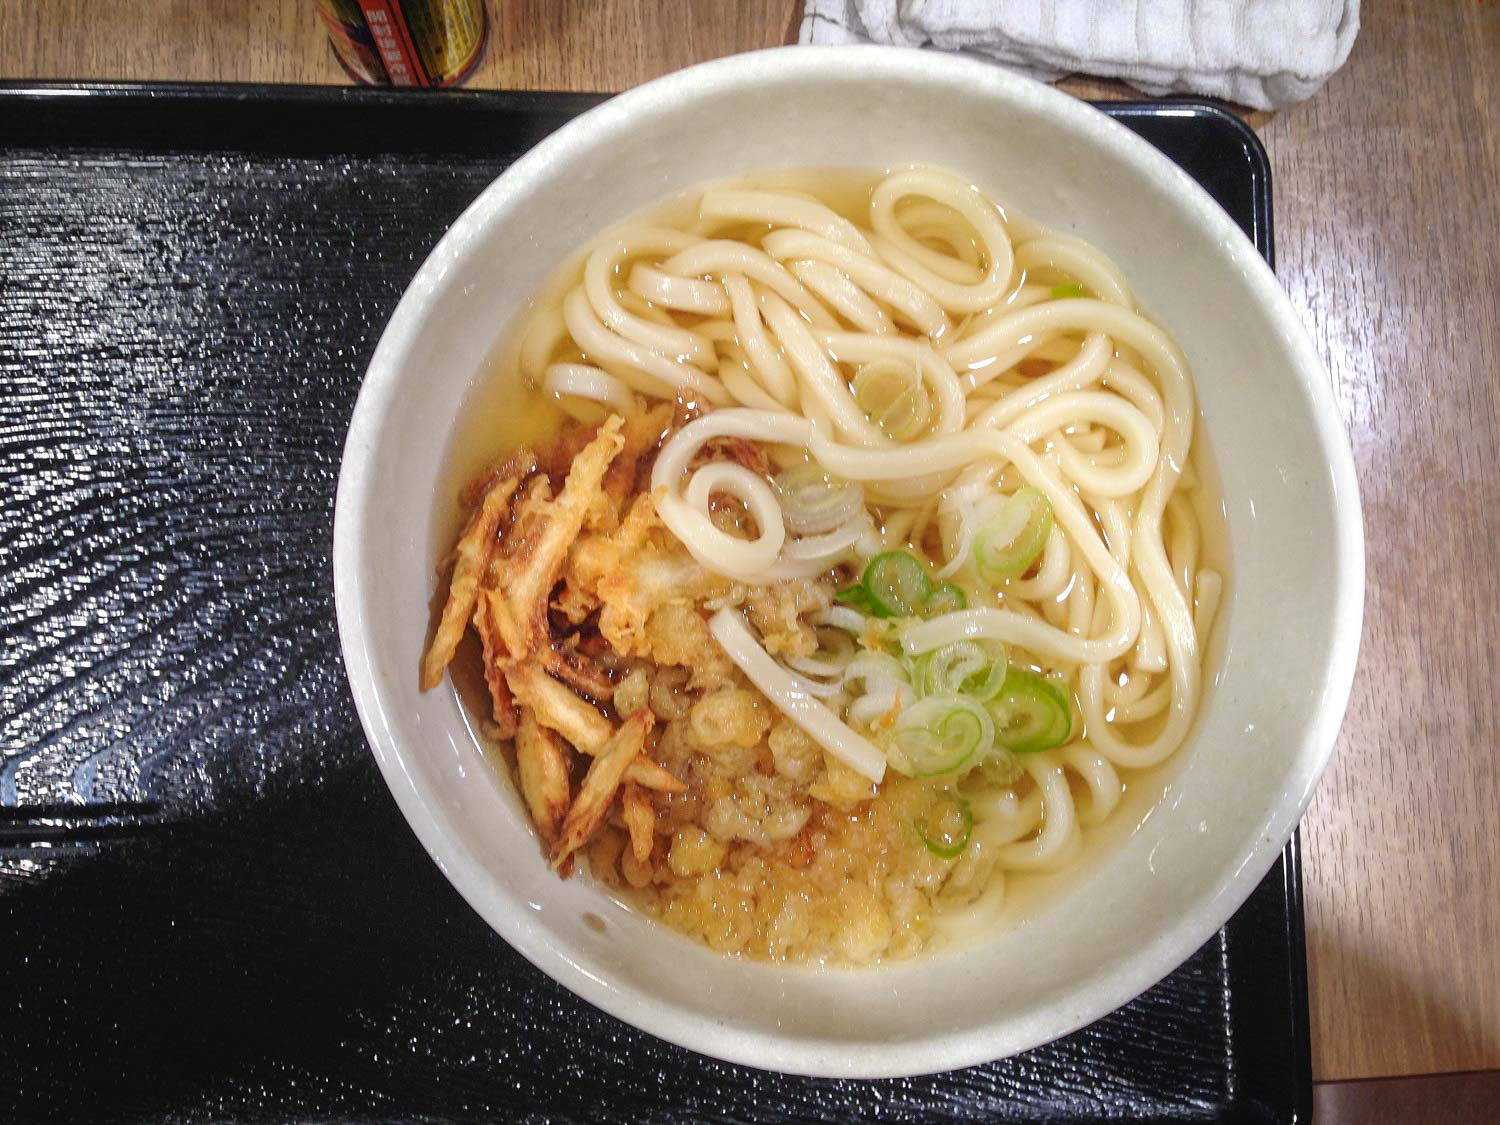 Udon tempura, one of the traditional things to eat in Japan